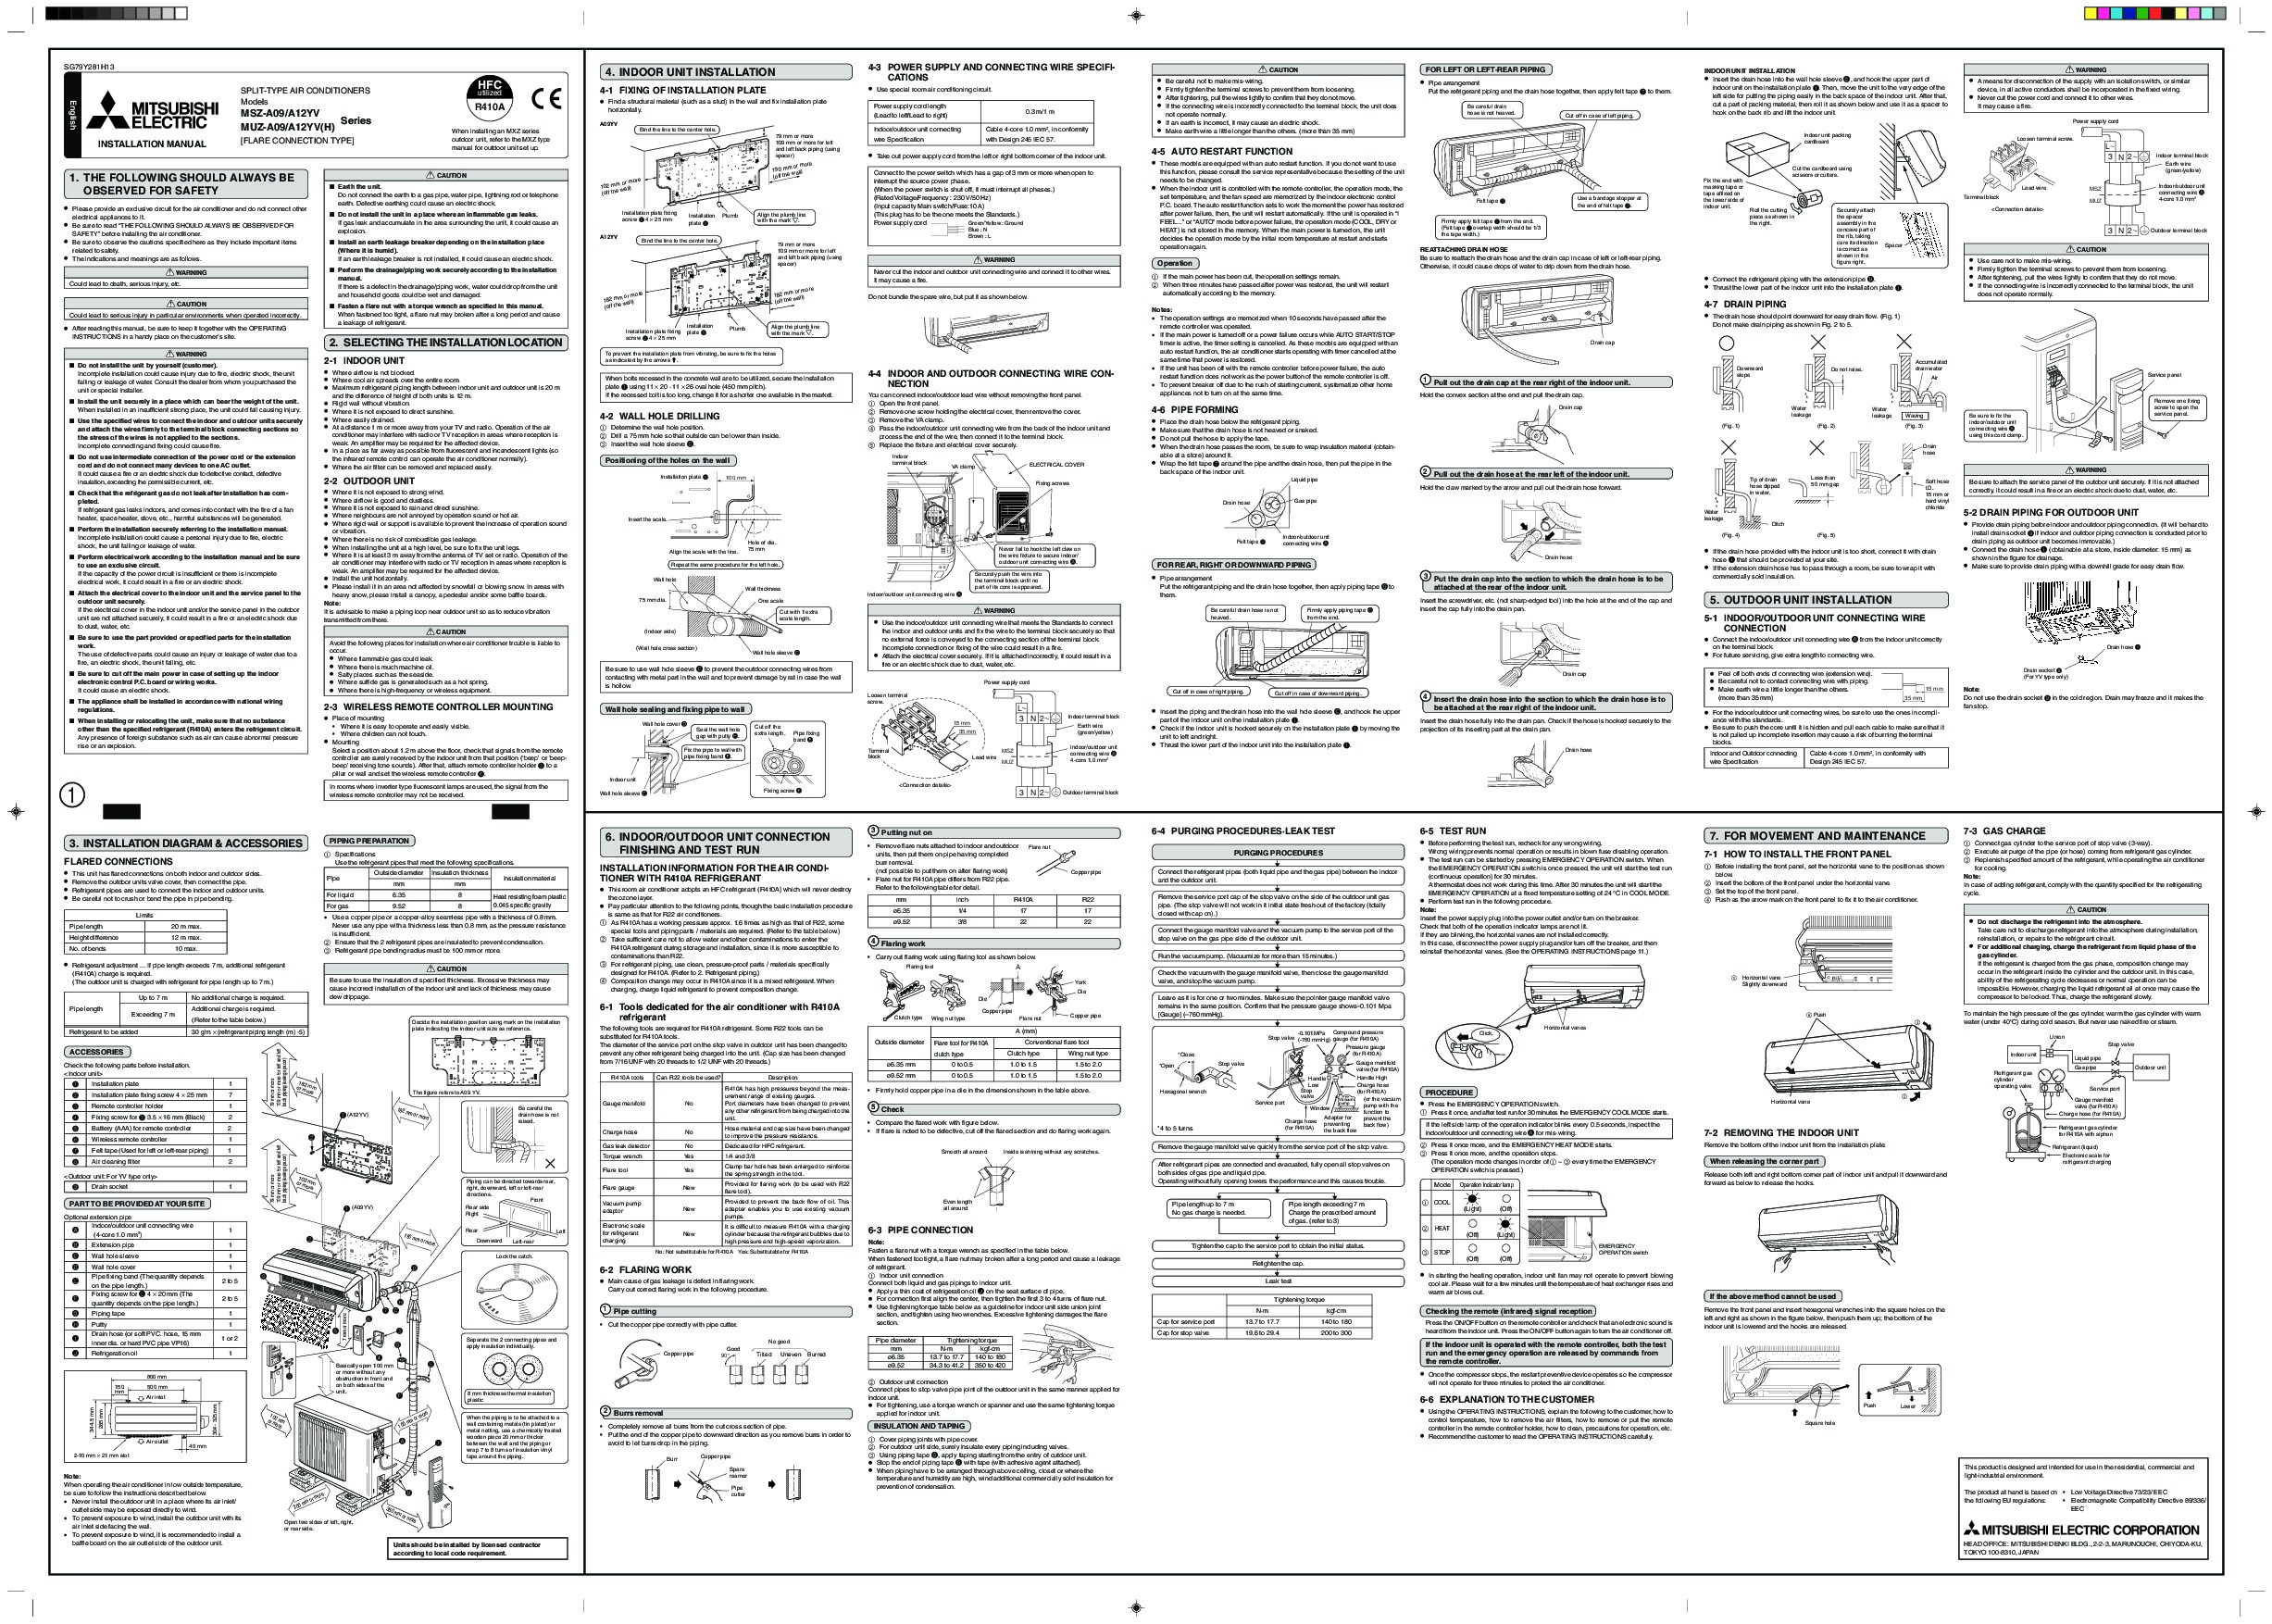 Mitsubishi Msz A09 A12yv Muz H Wall Air Conditioner M Series Wiring Diagram Installation Manual